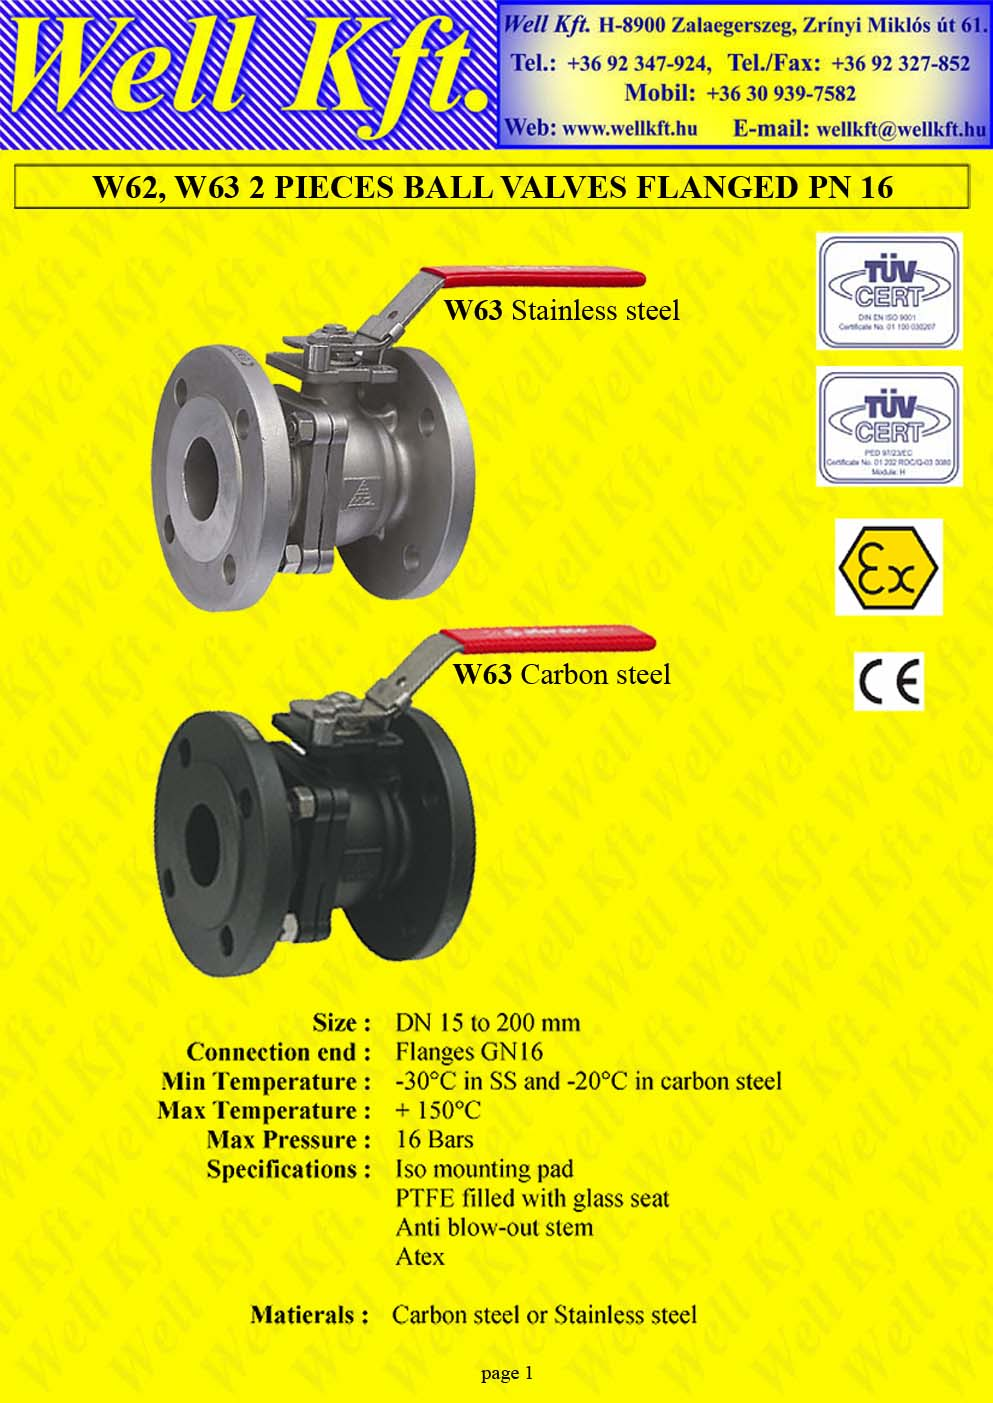 Ball valve 2 pieces stainless steel, carbon steel ISO pad, PN 16  (1.)